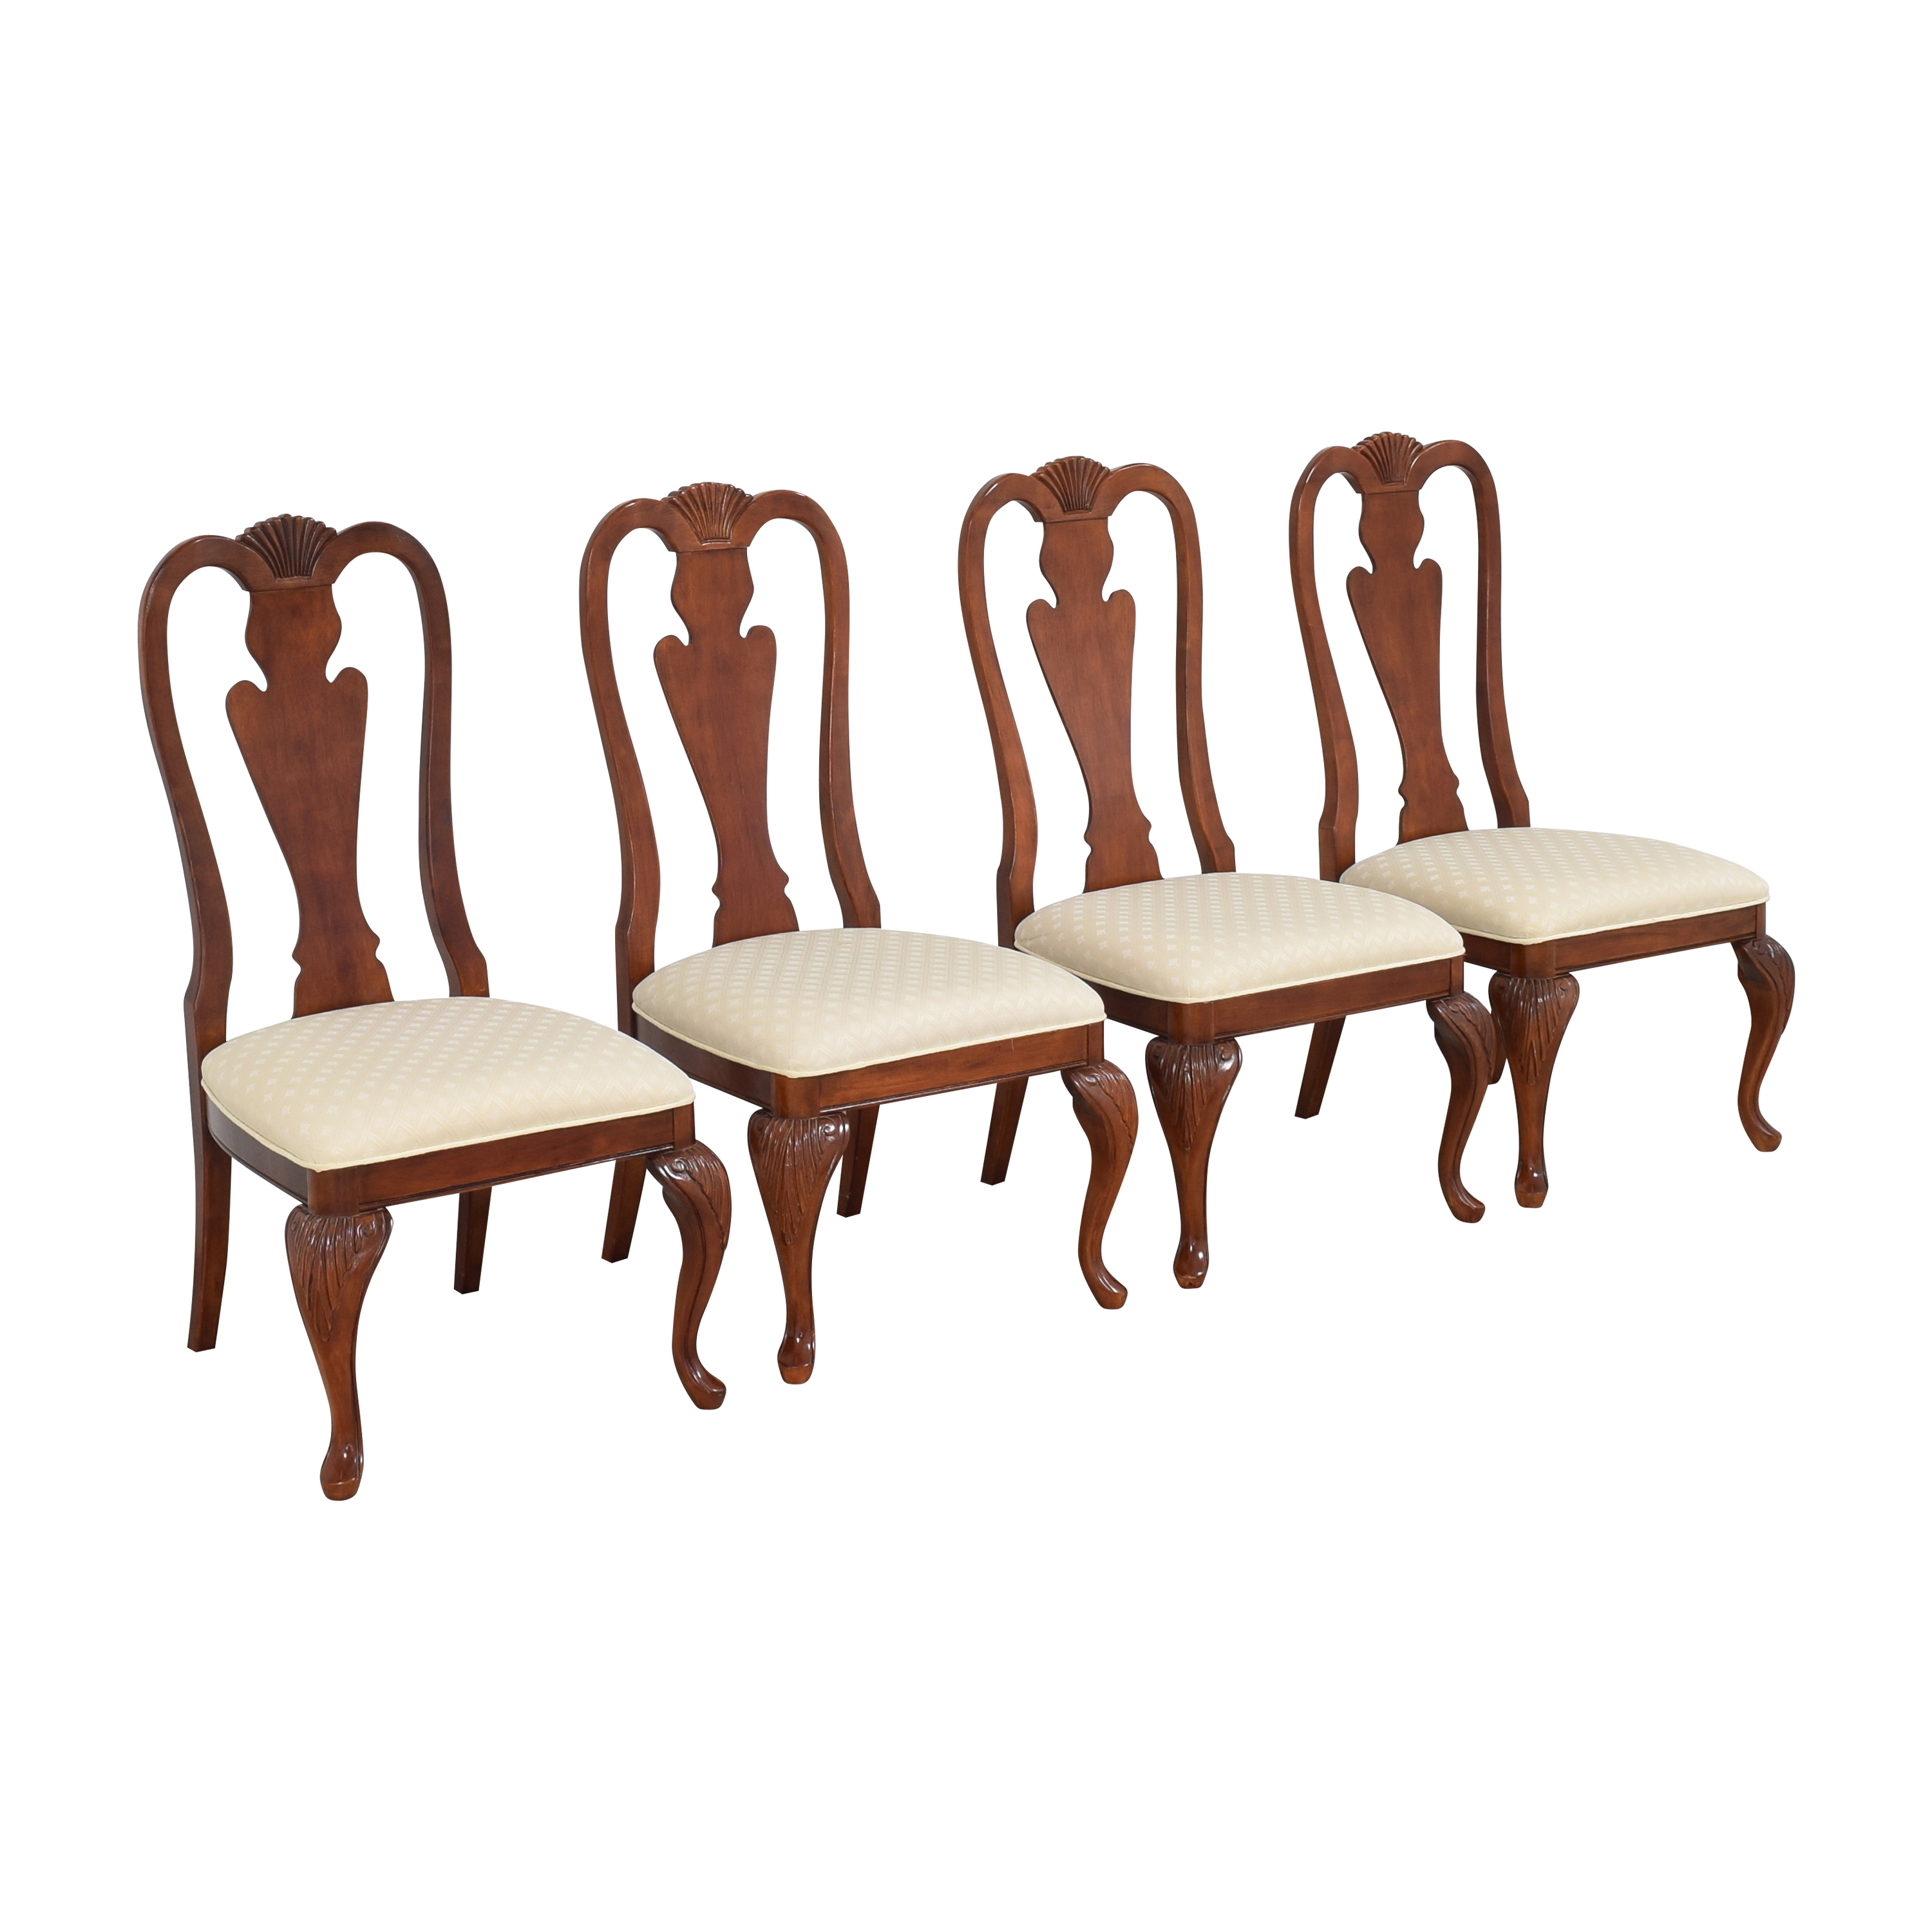 Hyundai Furniture Queen Anne Dining Chairs / Dining Chairs